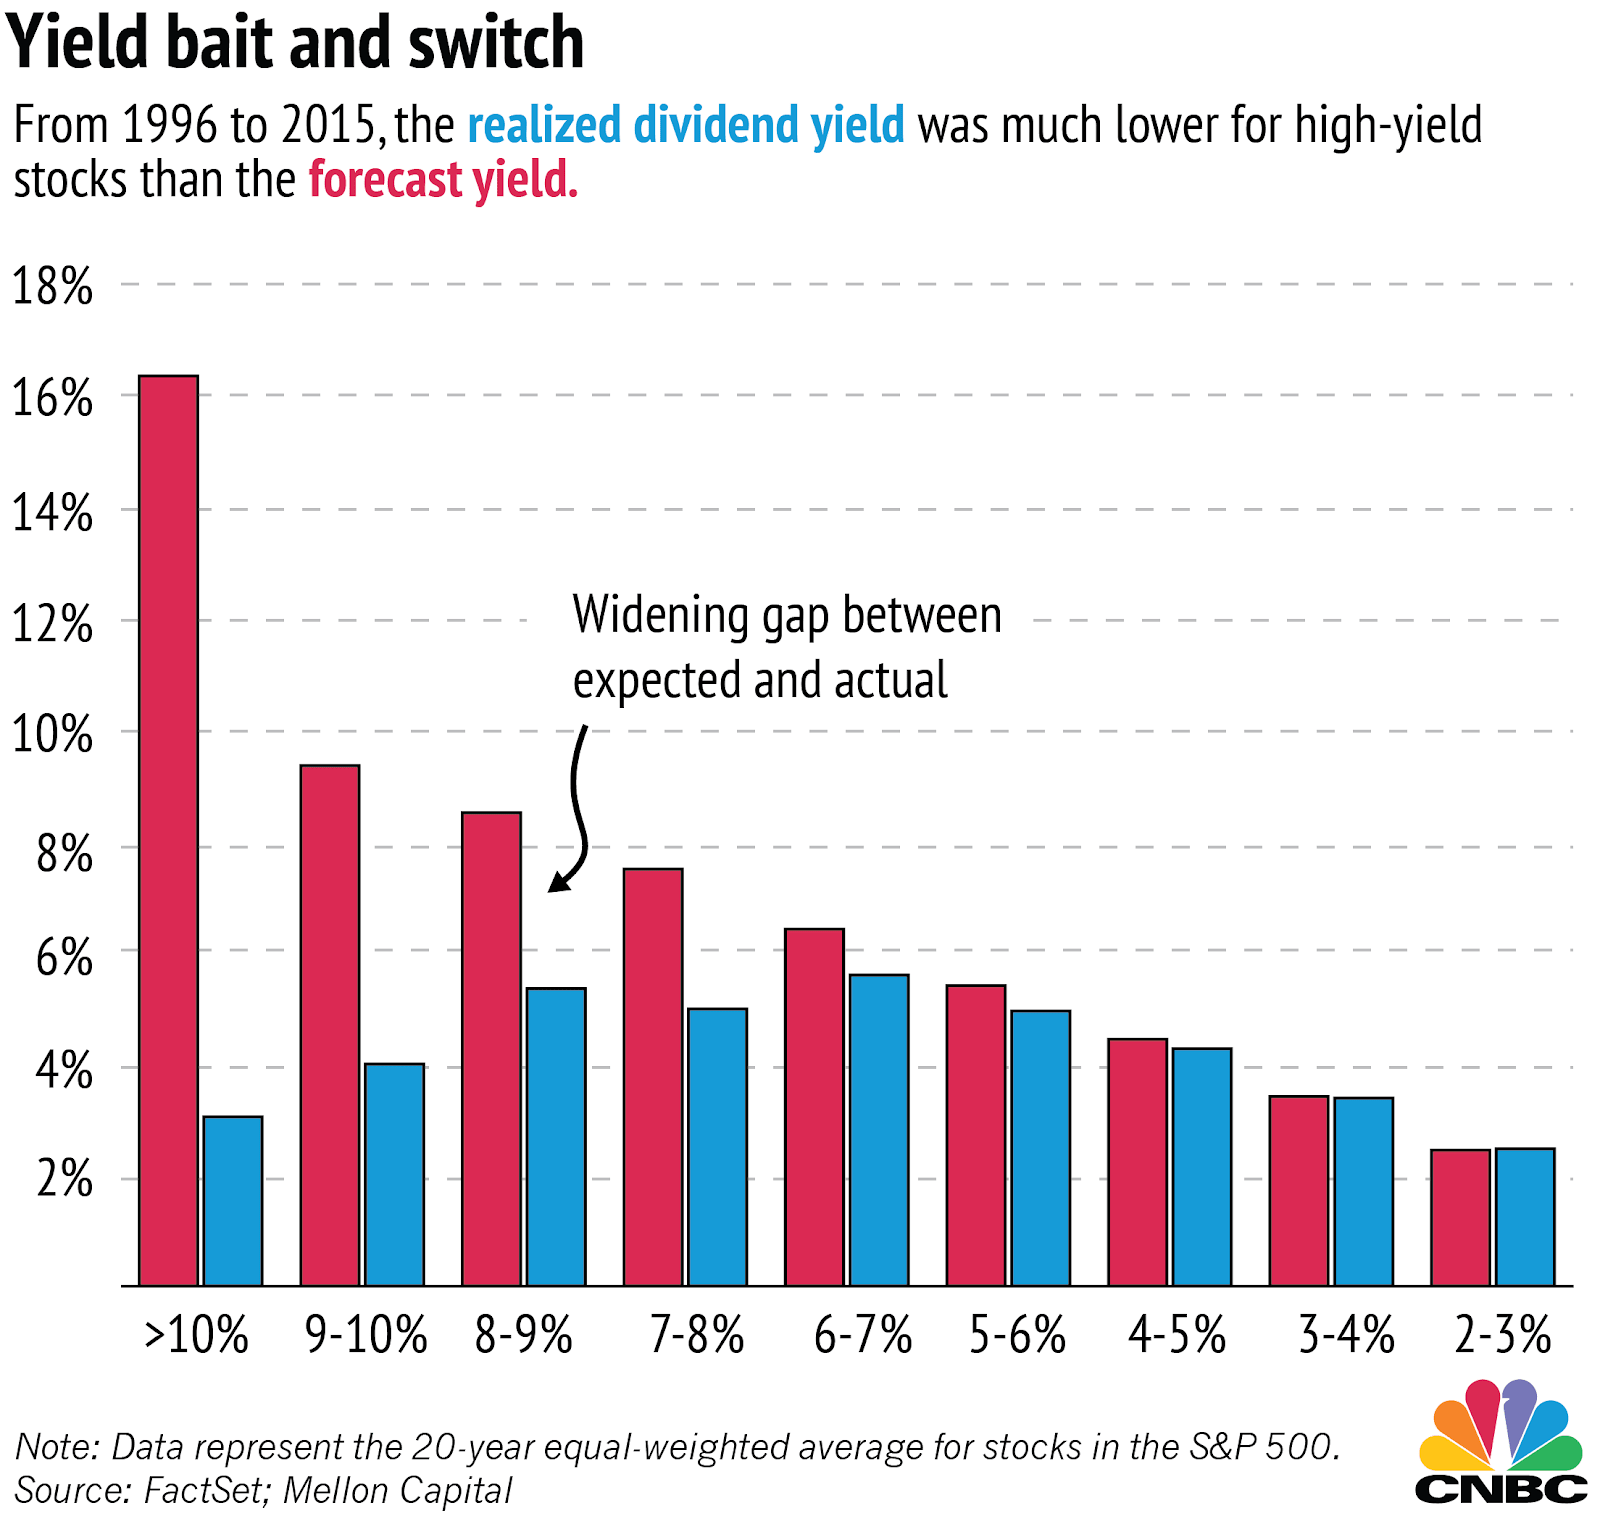 CNBC - Yield Bait & Switch - 20 Year Equal - Weighted Average for Stocks in the S&P 500